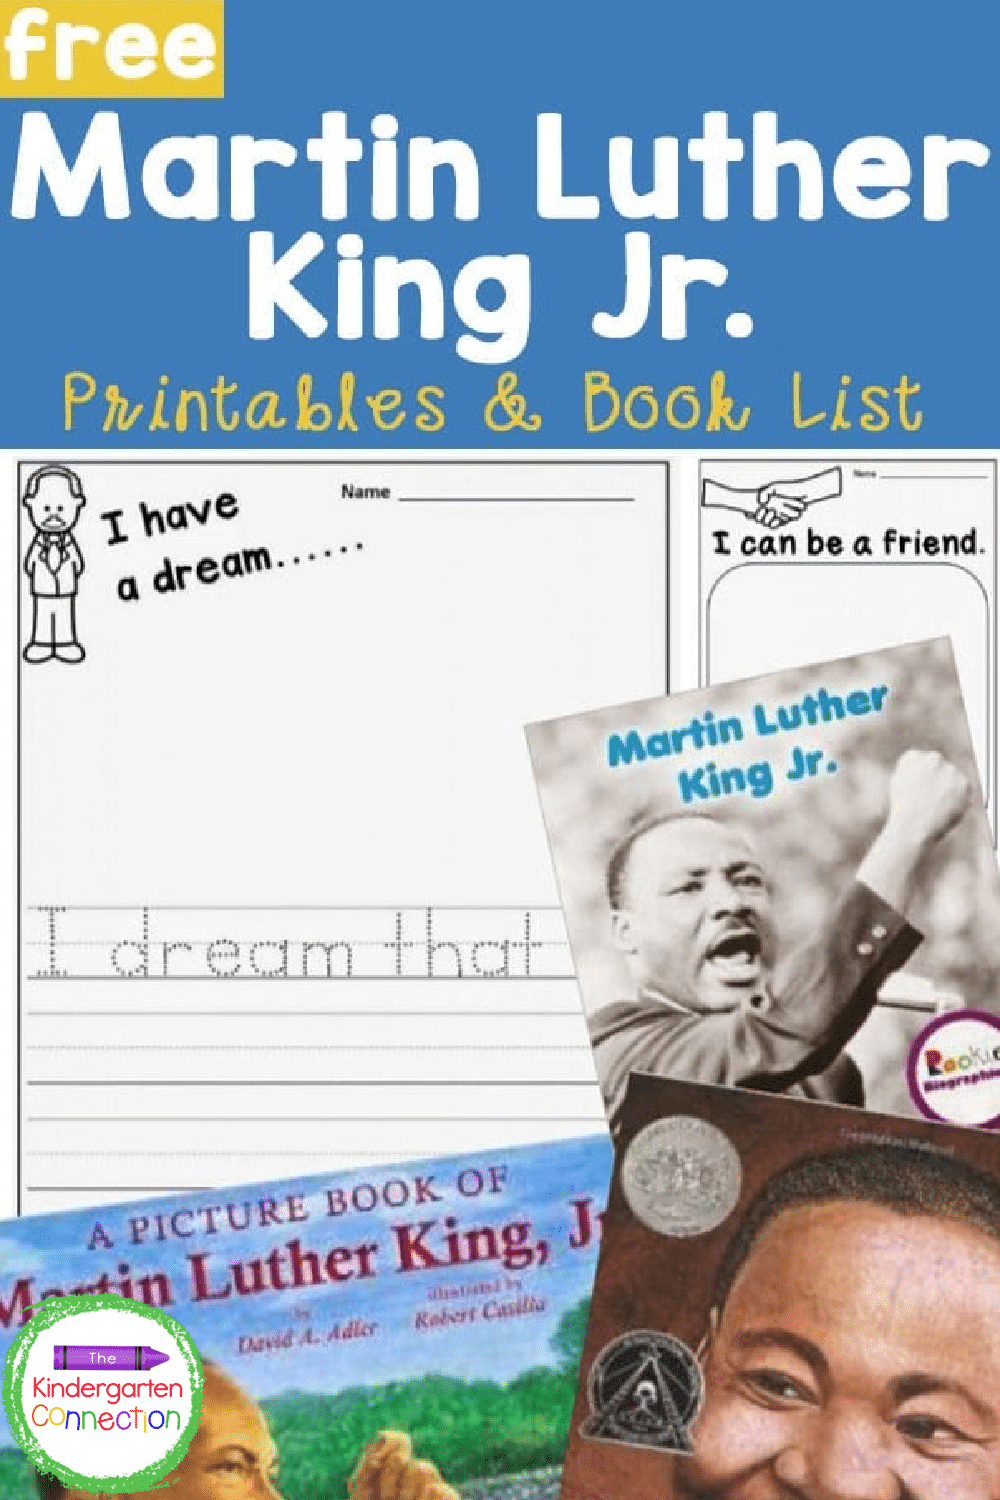 Honor Martin Luther King, Jr. by learning about his life and what he stood for with these MLK read alouds and free printables!